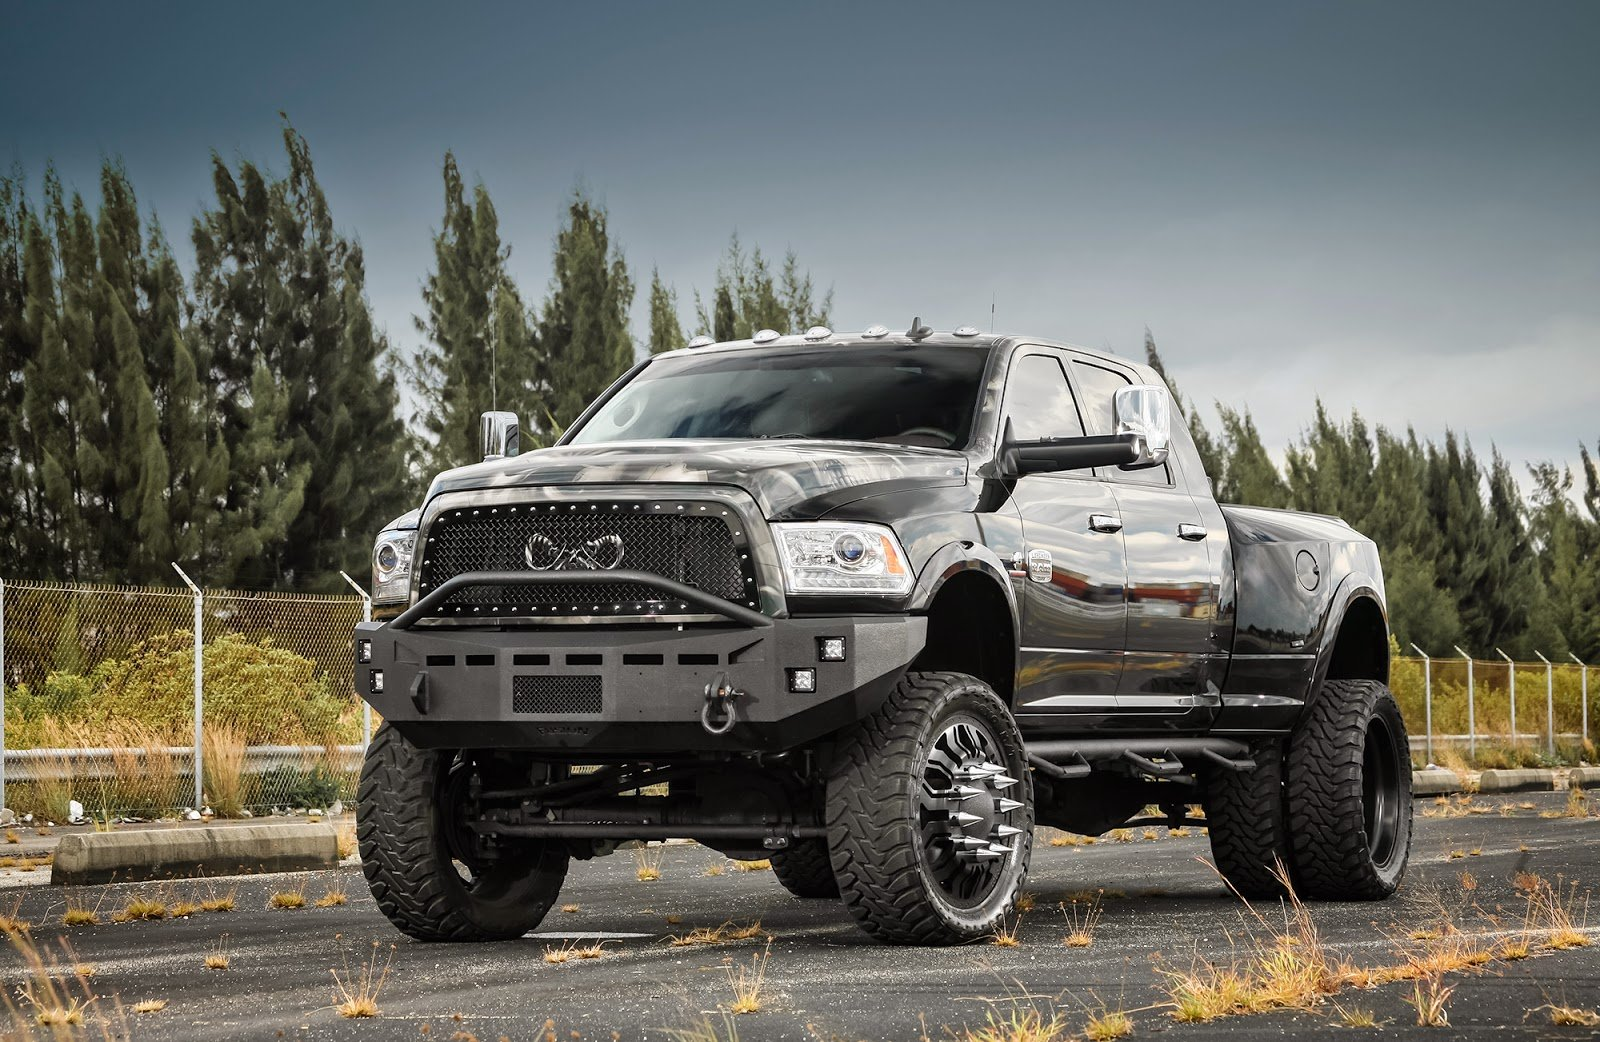 Black Cars Duty F350 Ford Pickup Super Truck Tuning